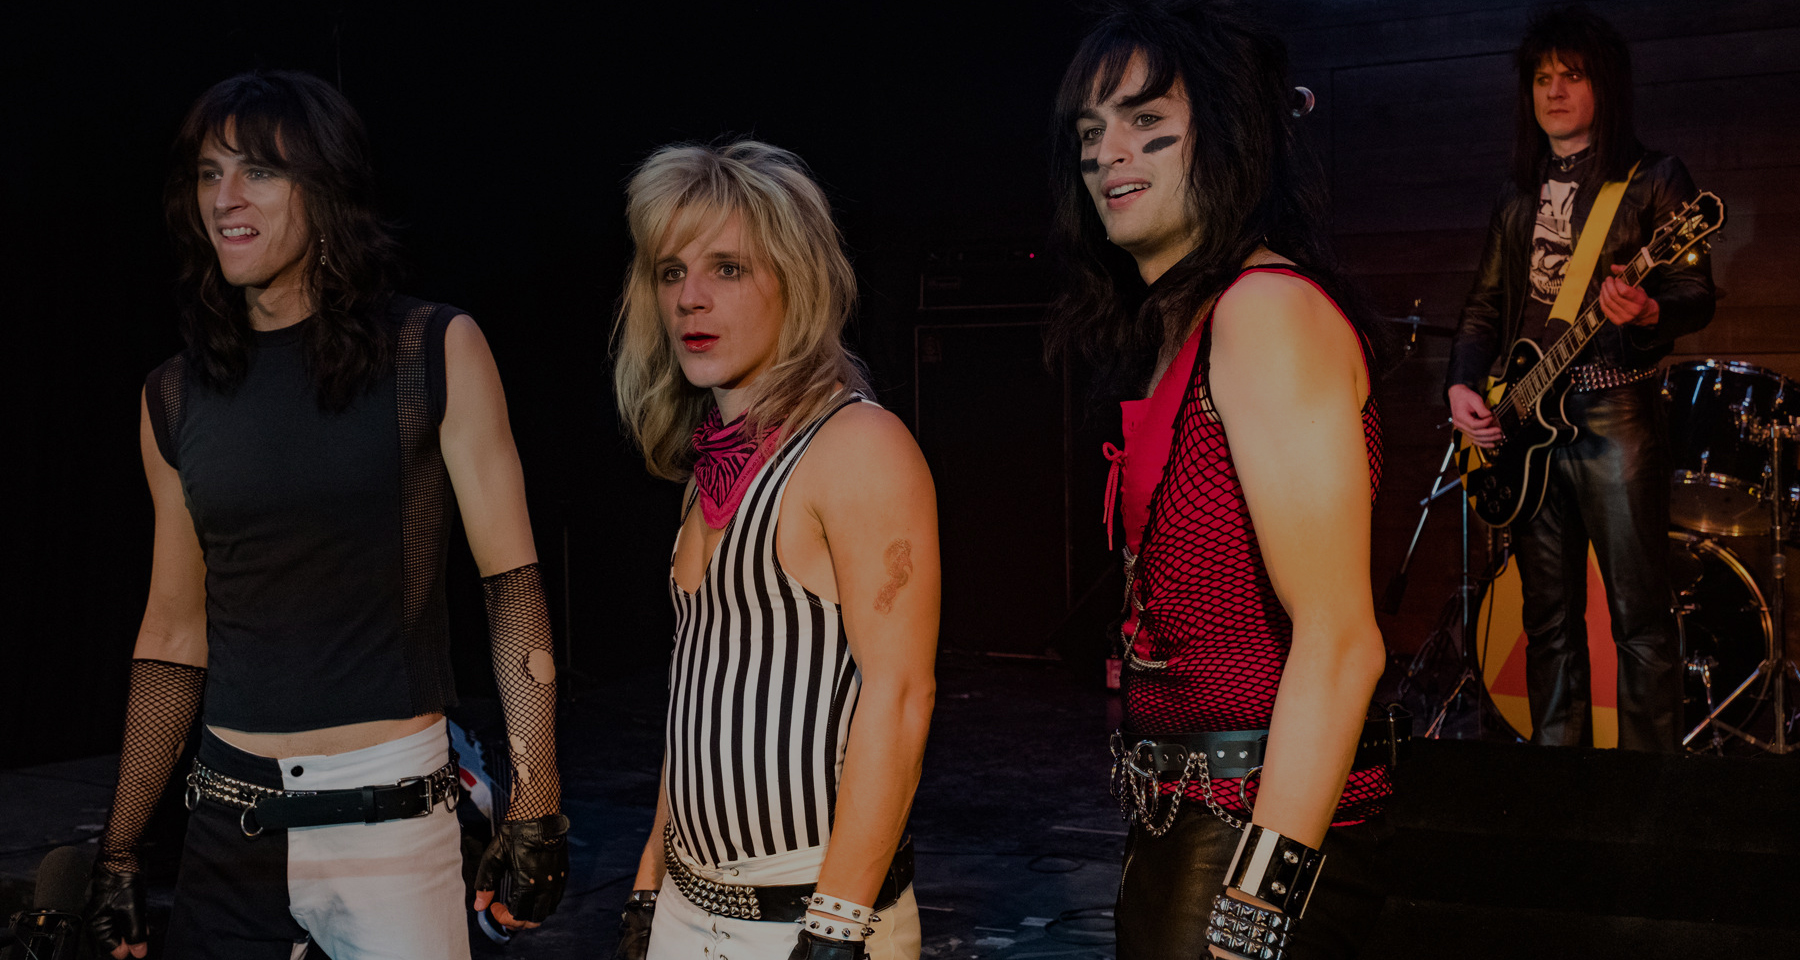 Sex, Drugs and Rock'n Roll: The Dirt (2019)